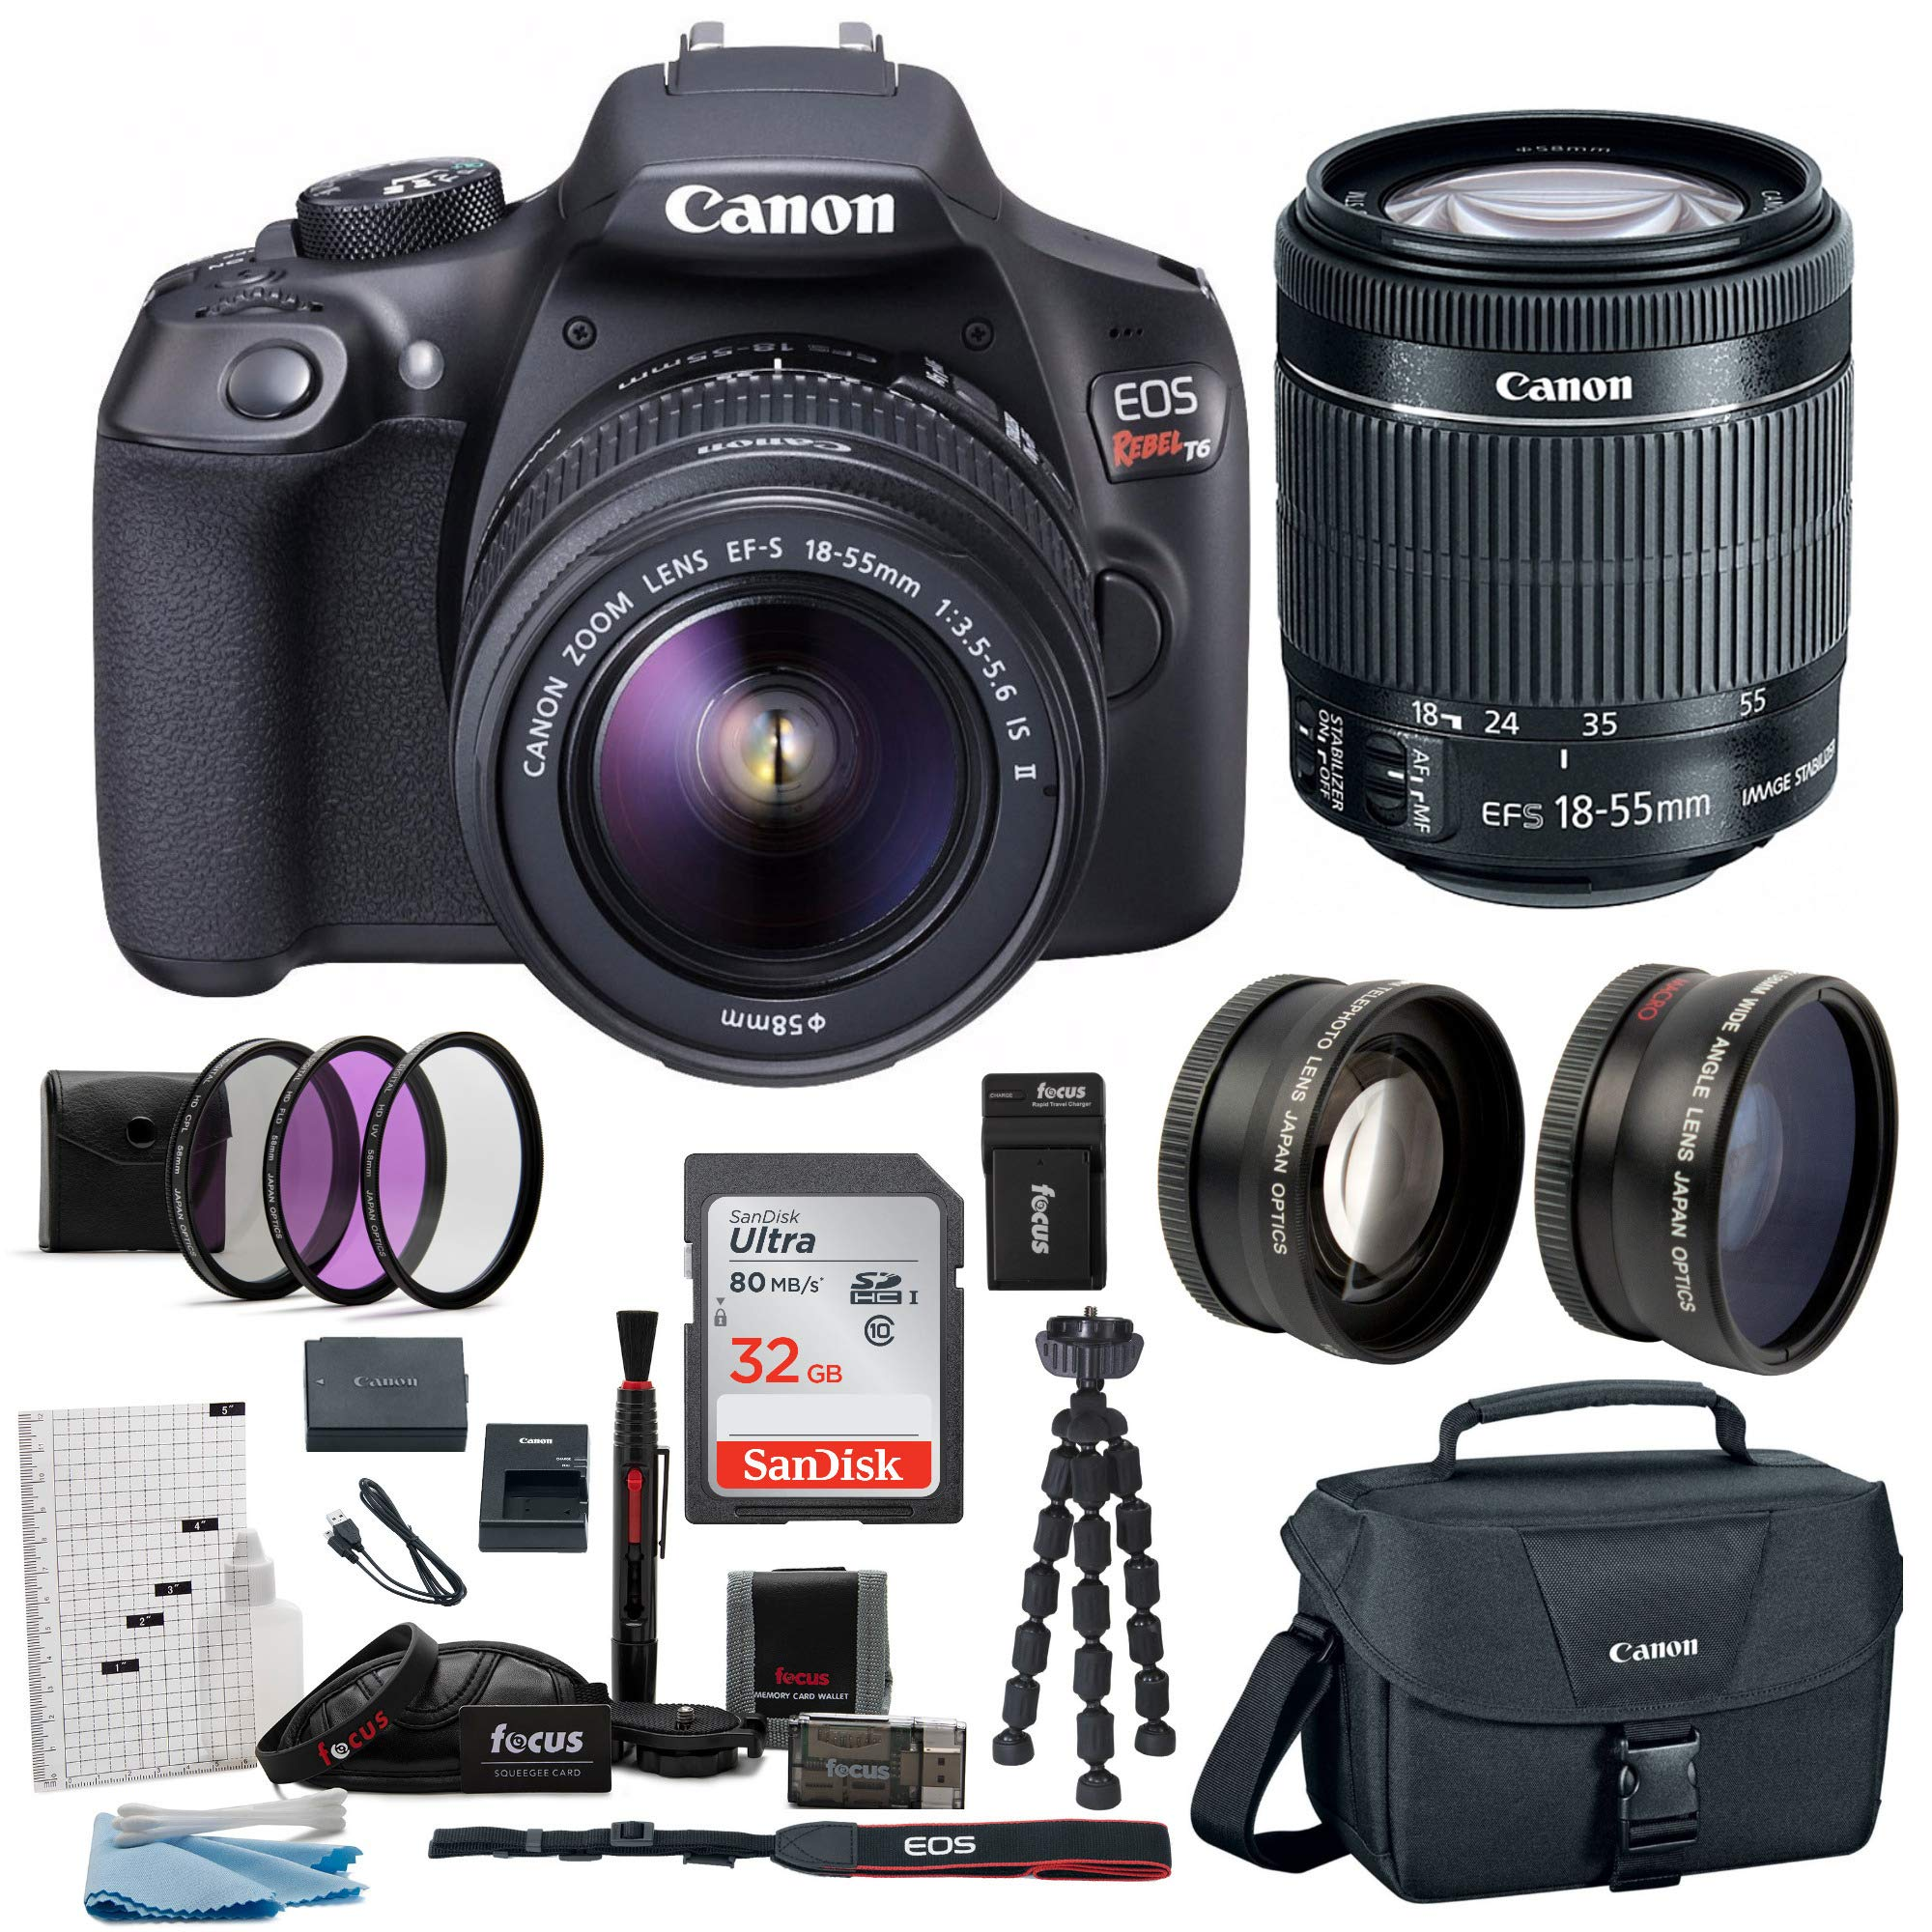 Canon EOS Rebel T6 Digital Camera: 18 Megapixel 1080p HD Video DSLR Bundle With Wide Angle 18-55 MM Lens 32GB SD Card Mini Tripod Filter Kit & Charger - Professional Vlogging Sports and Action Cameras by Canon (Image #1)